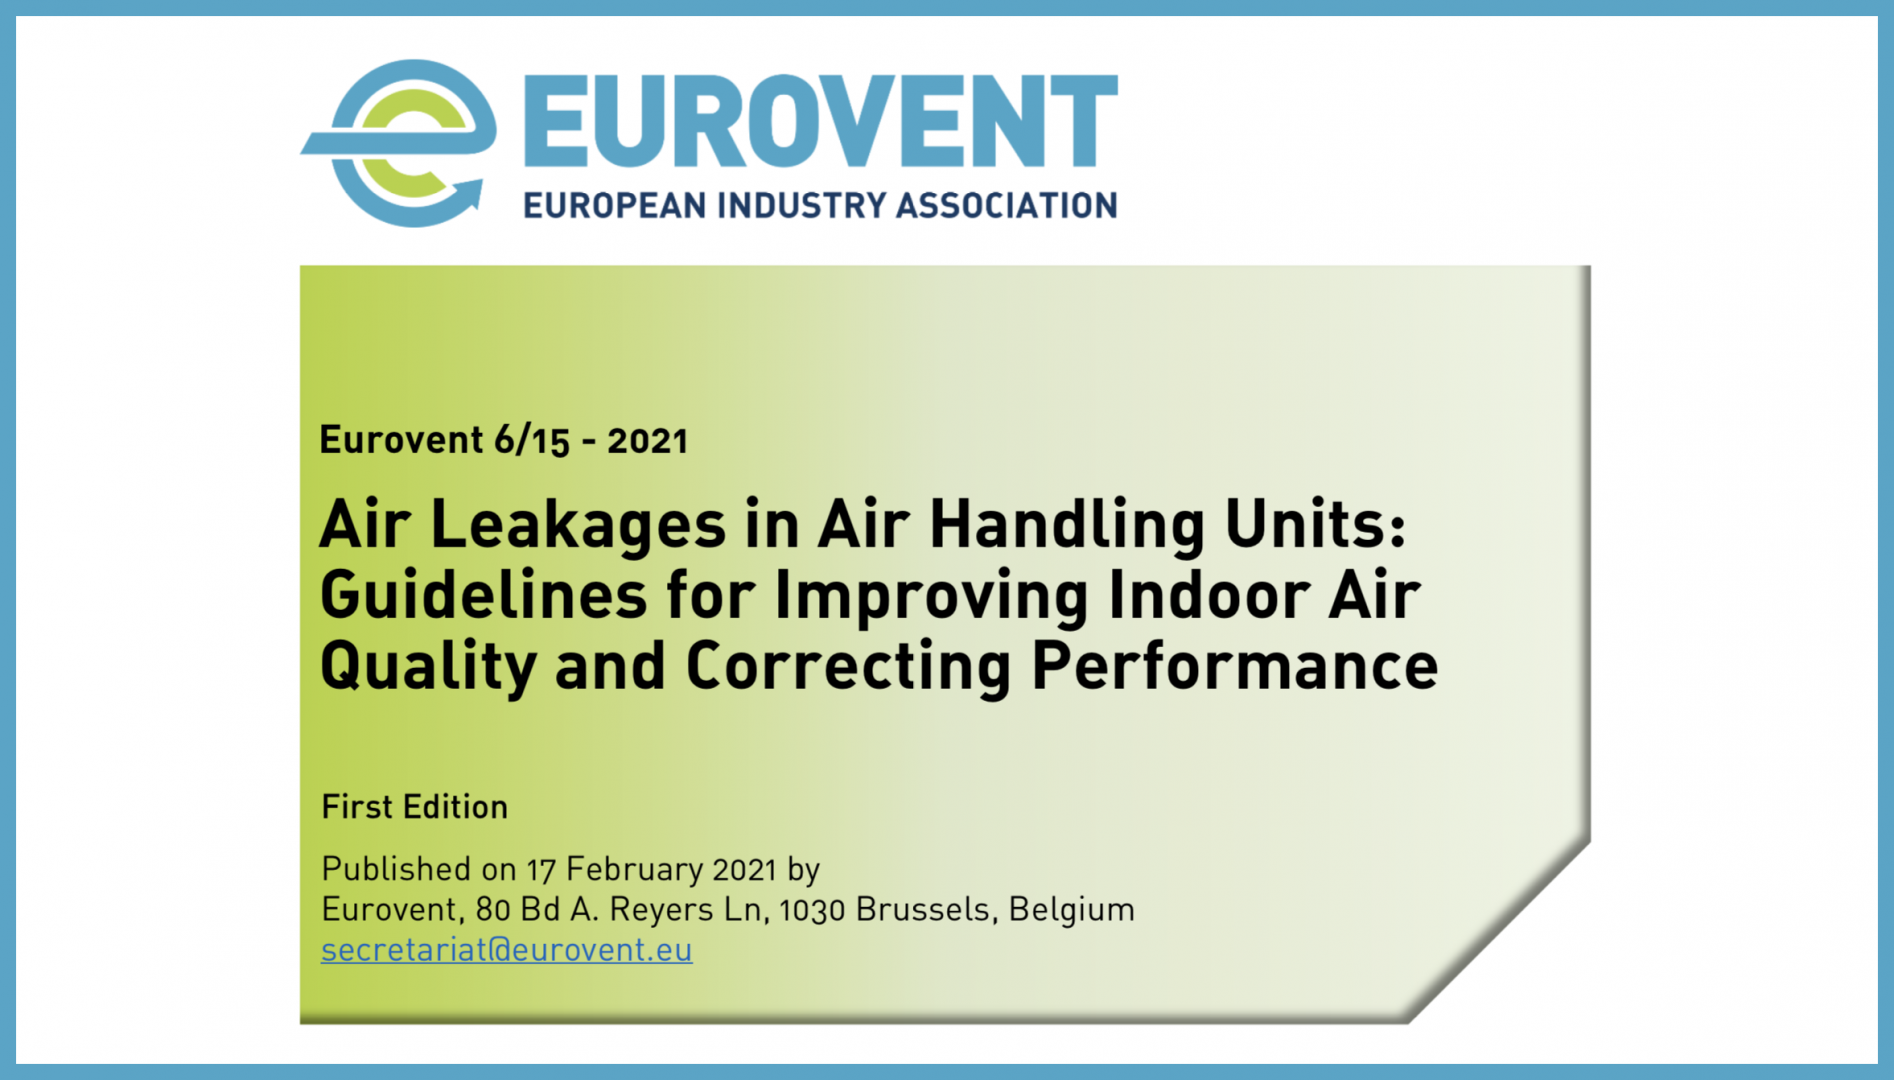 2021 - Eurovent Recommendation on air leakages published